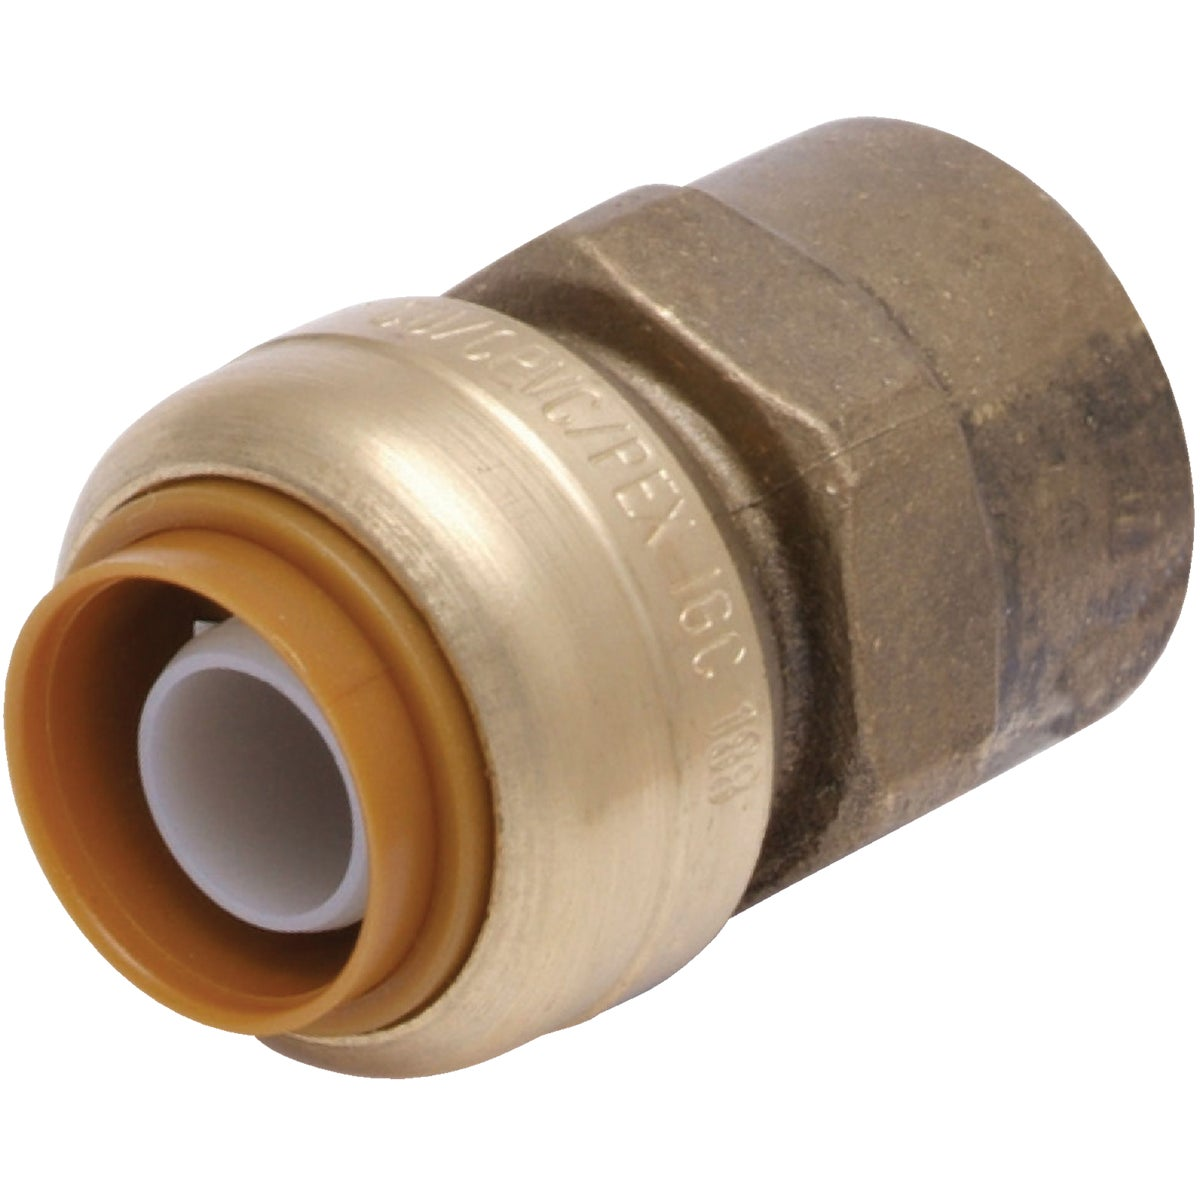 "1/2"" FIP PUSH ADAPTER - U072LFA by Cash Acme"